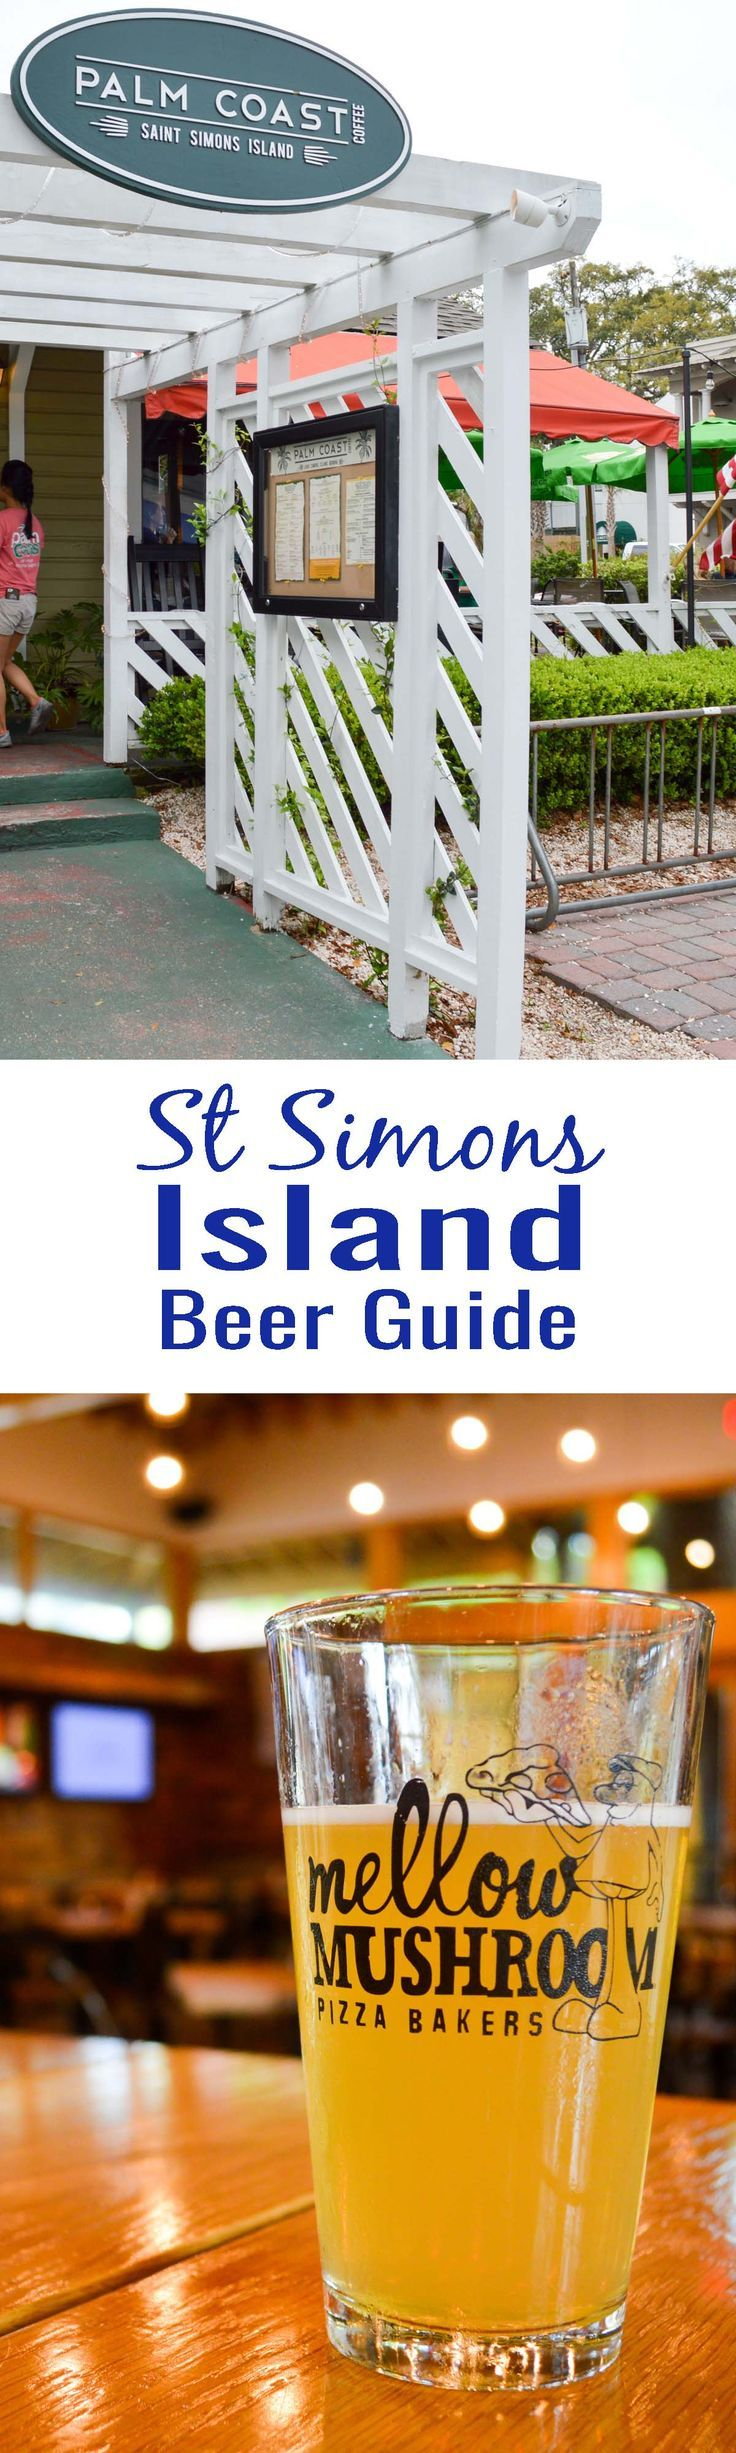 Our St Simons Island beer guide covers everything from bottle shops to beer focused bars and restaurants. Enjoy a craft beer alongside that fresh seafood dinner or on that afternoon at the beach!